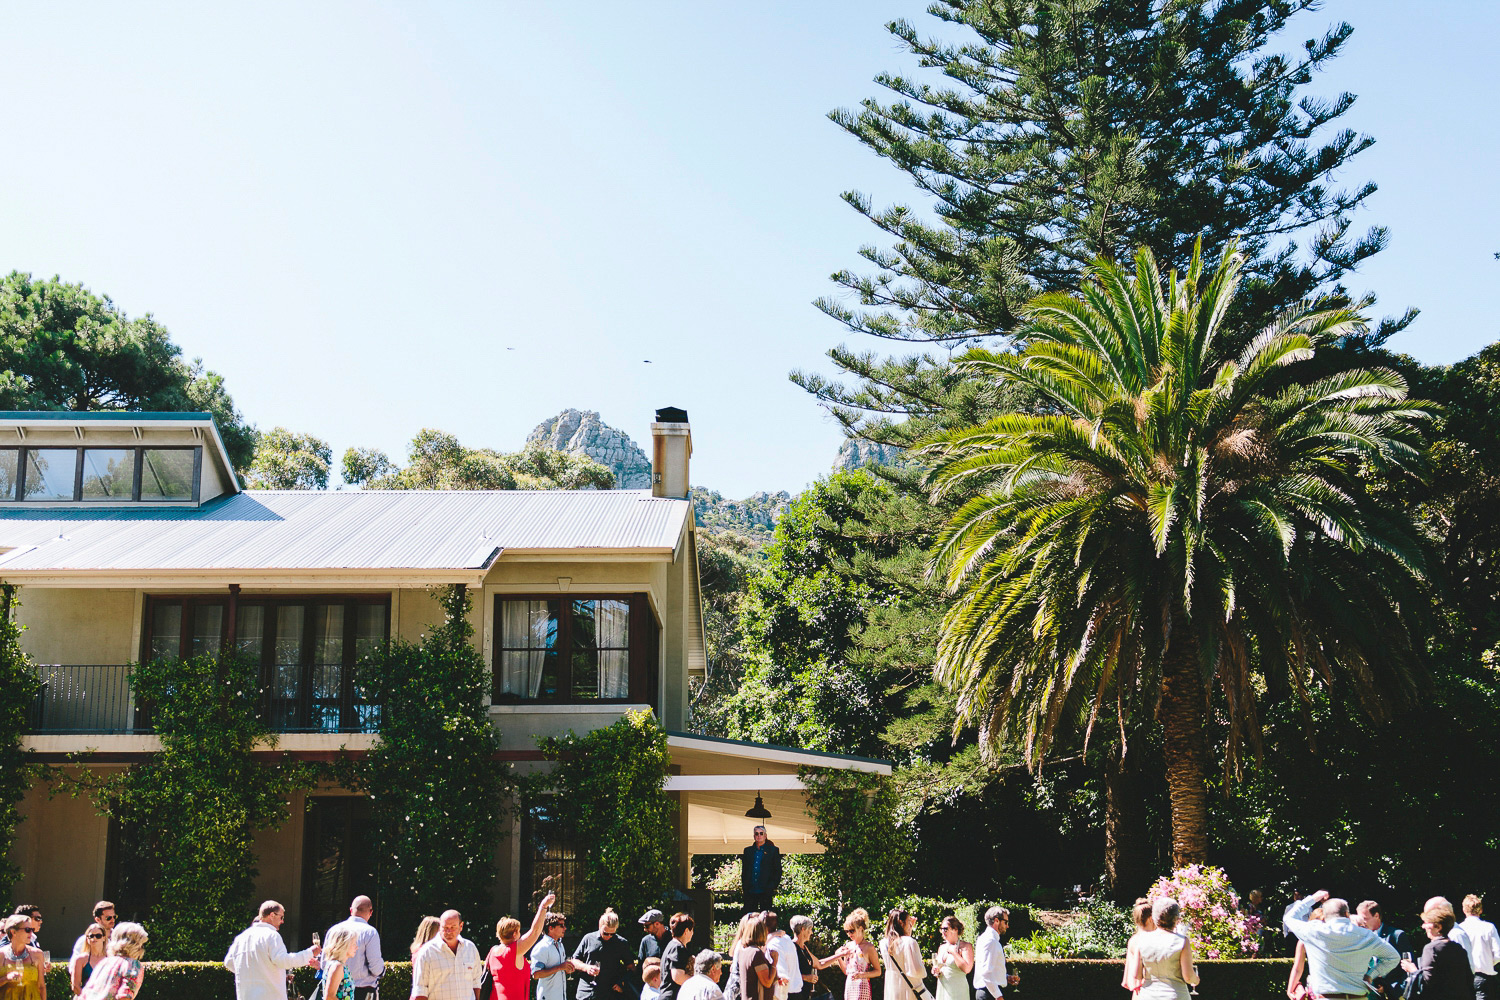 cape-town-wedding-photographer-western-cape-constansia-camilla-charlie-ray28.jpg